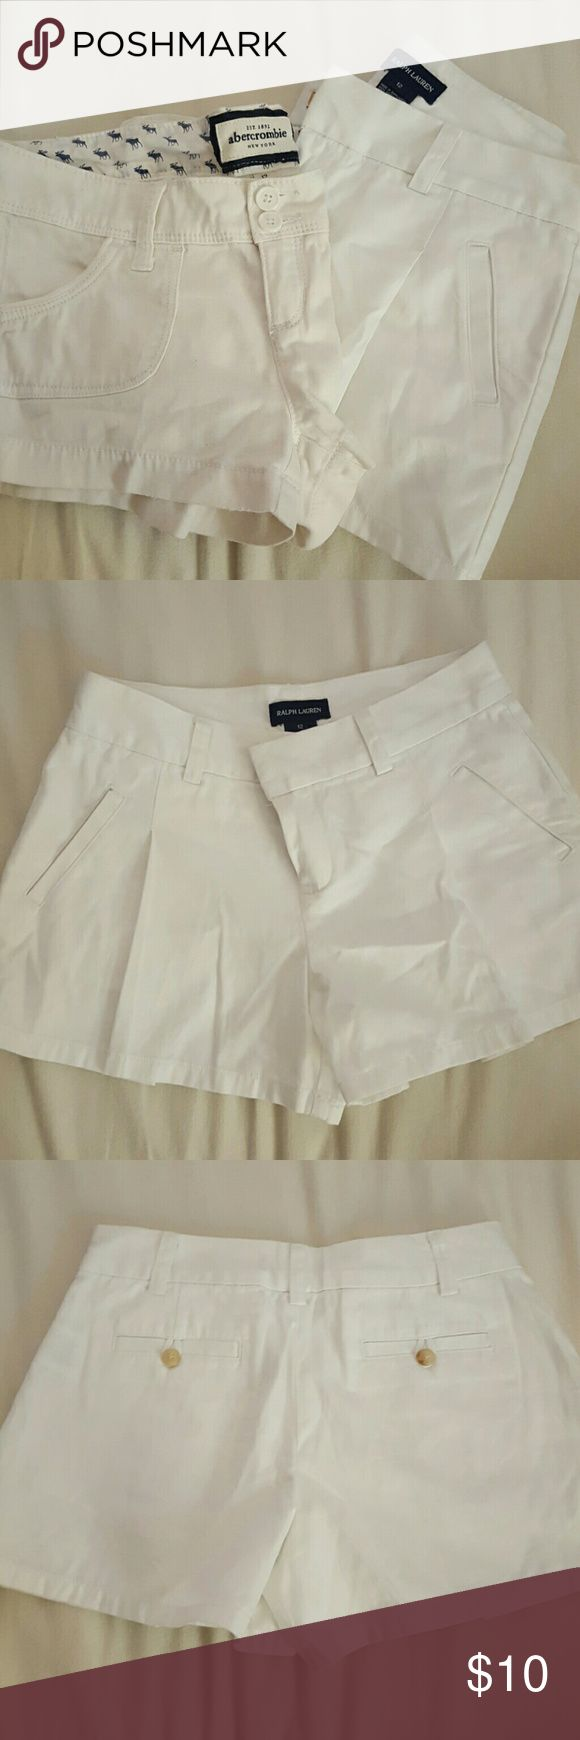 Girls shorts 1 white Ralph Lauren girls shorts size 12.  RL shorts have one pleat on each leg and shirts almost resemble a tennis skirt.  1 pair of off-white Abercrombie girls shorts  (short shorts) . Both gently used. Ralph Lauren Bottoms Shorts